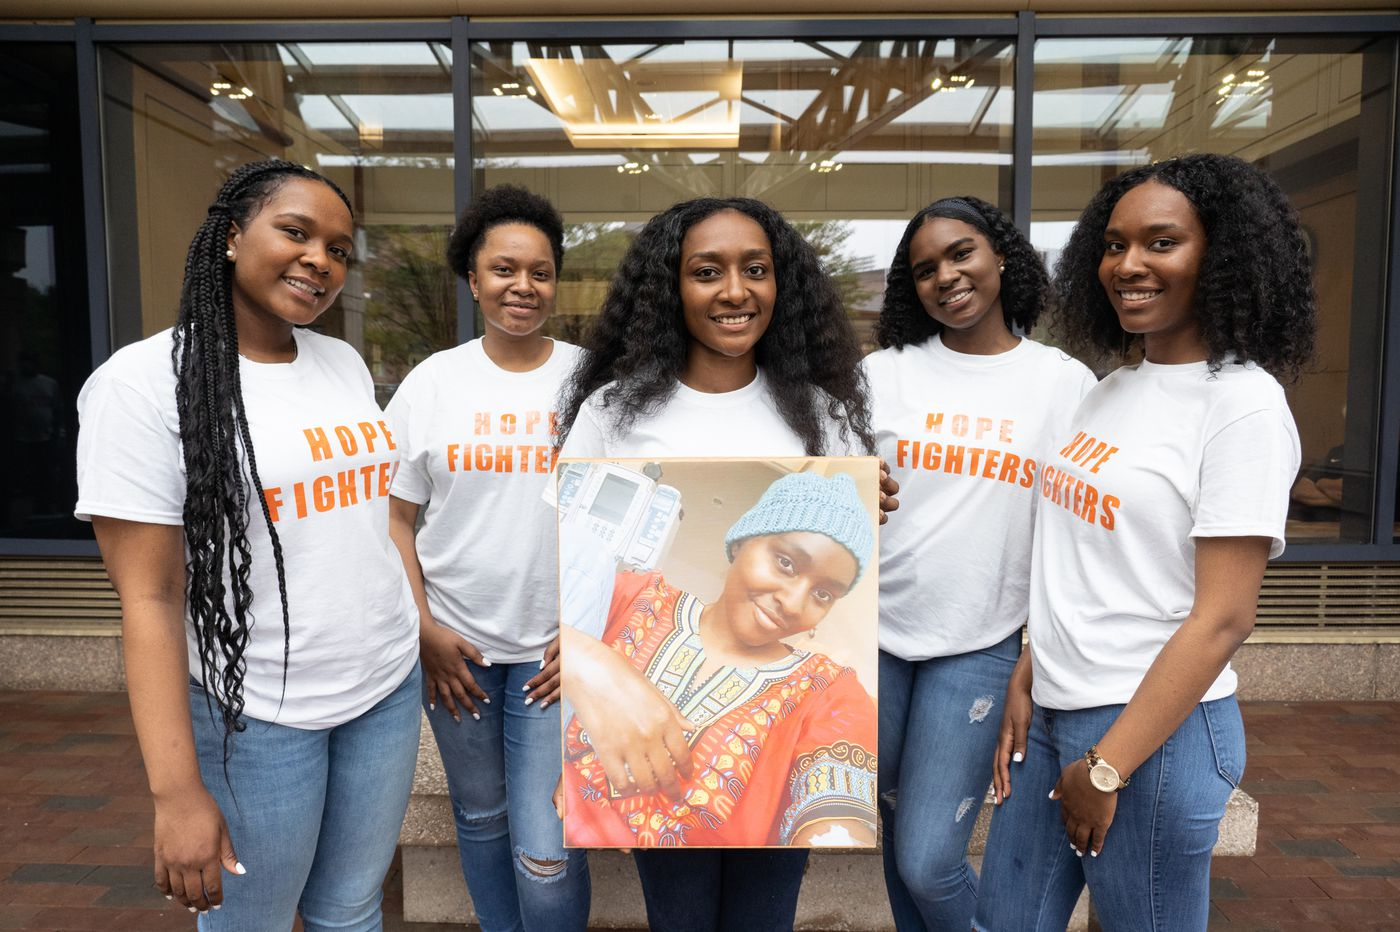 Her Sisters Made a Video With 200 Friends and Family to Help Her Through Leukemia Treatments